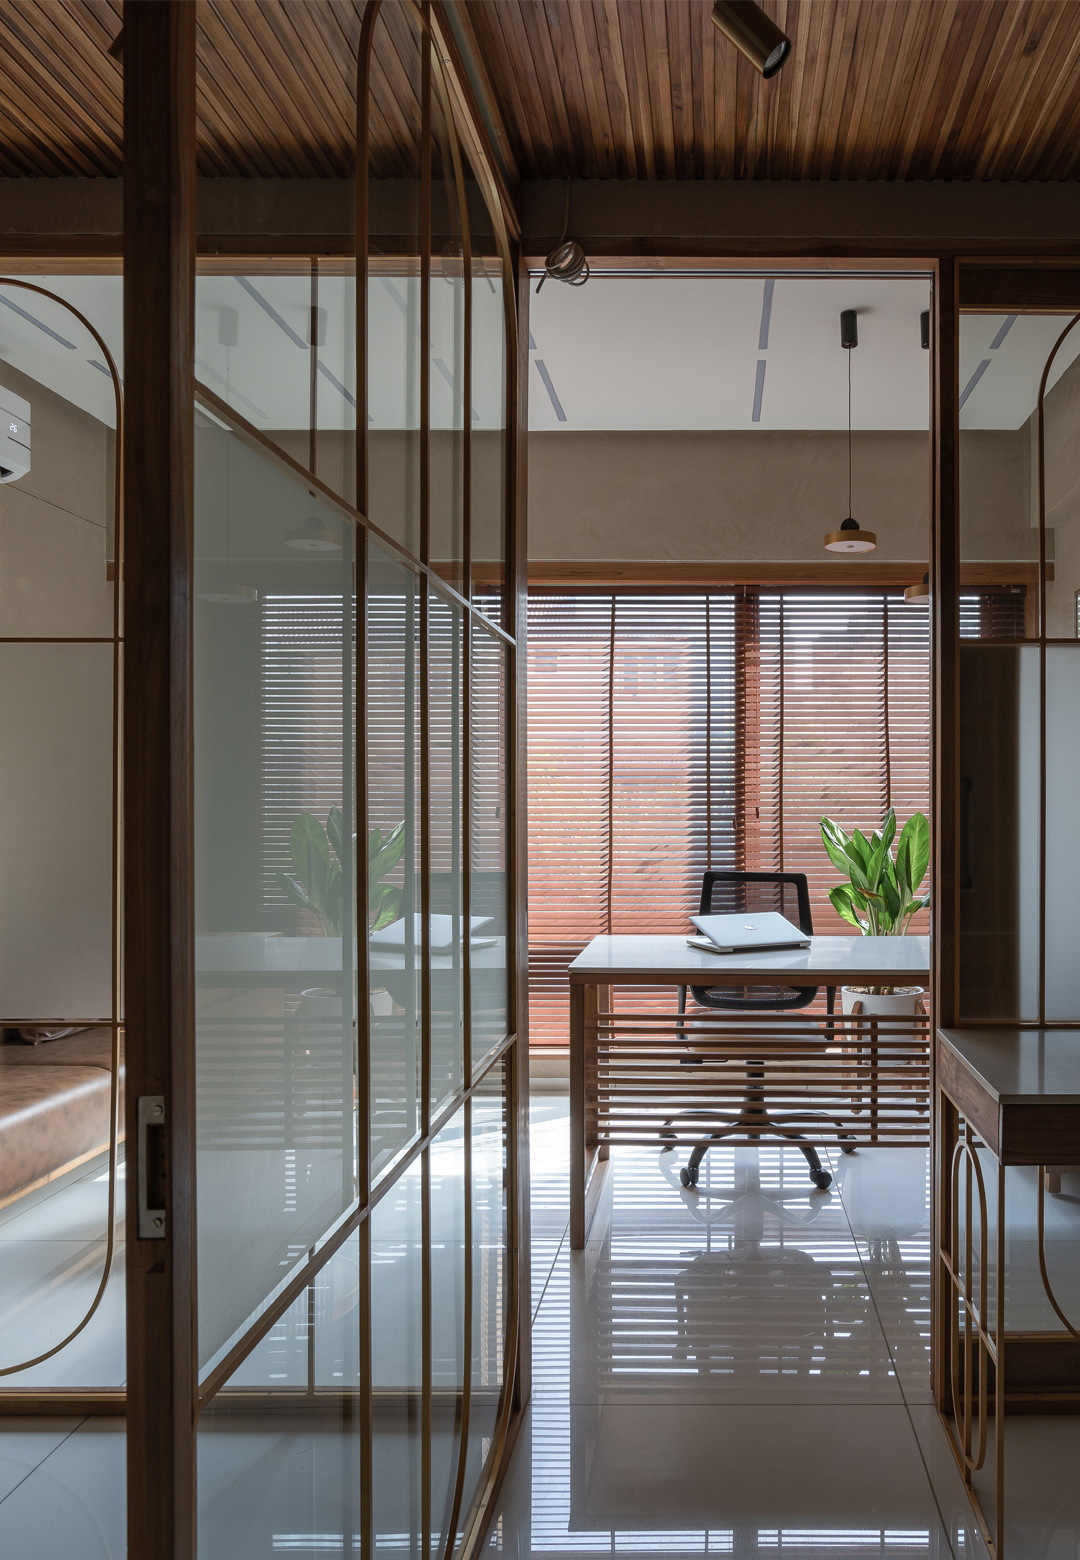 Interior project 'Delusion' designed by UA Lab in Ahmedabad| Project Delusion | UA Lab | STIRworld